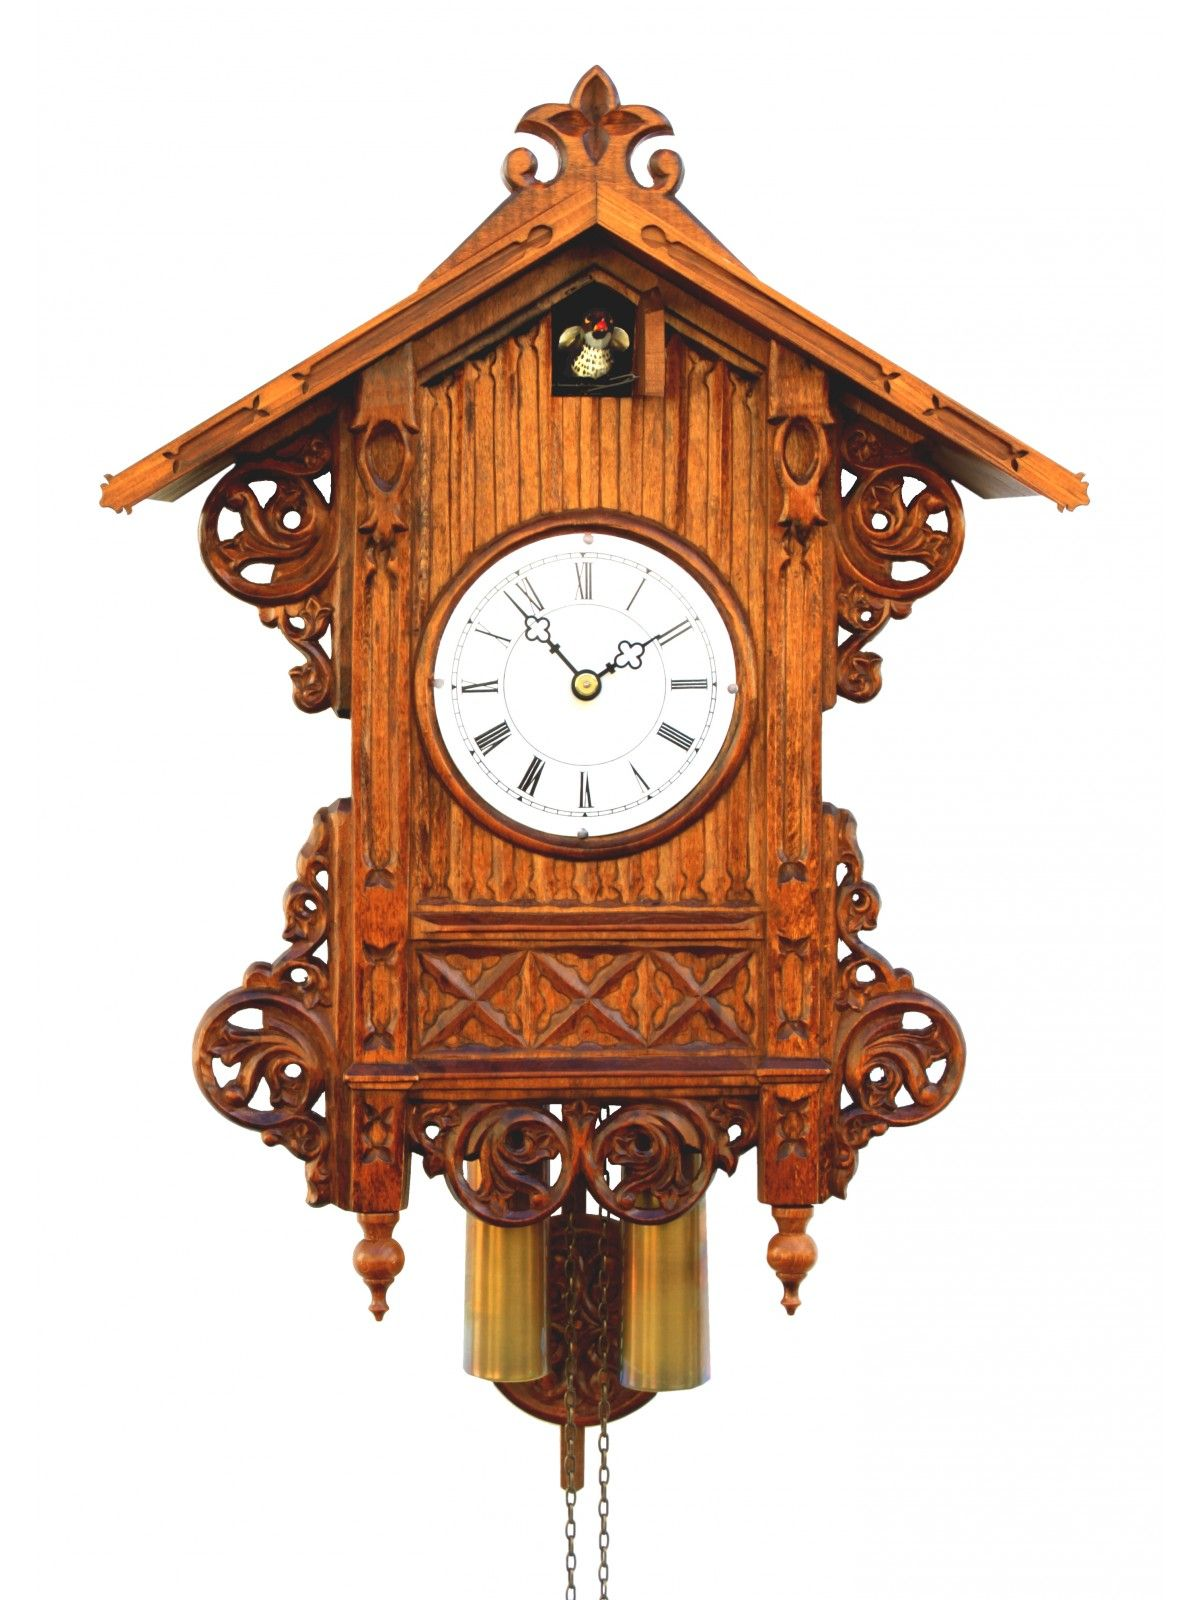 Historical 8 day cuckoo clock wooden clocks pinterest cuckoo historical 8 day cuckoo clock amipublicfo Images